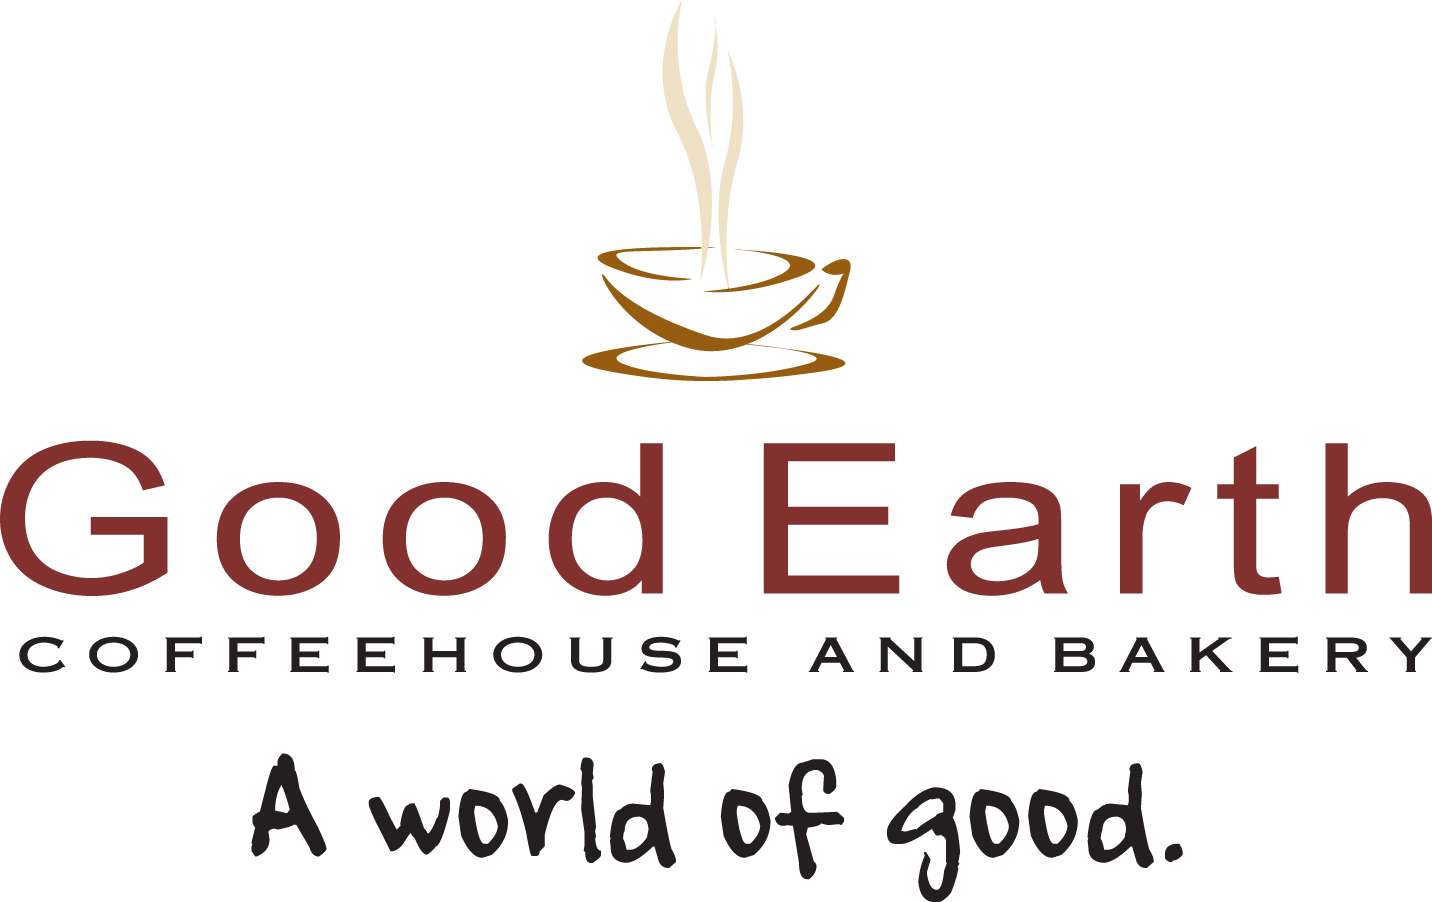 Good Earth Coffee House - SmarterU LMS - Online Training Software